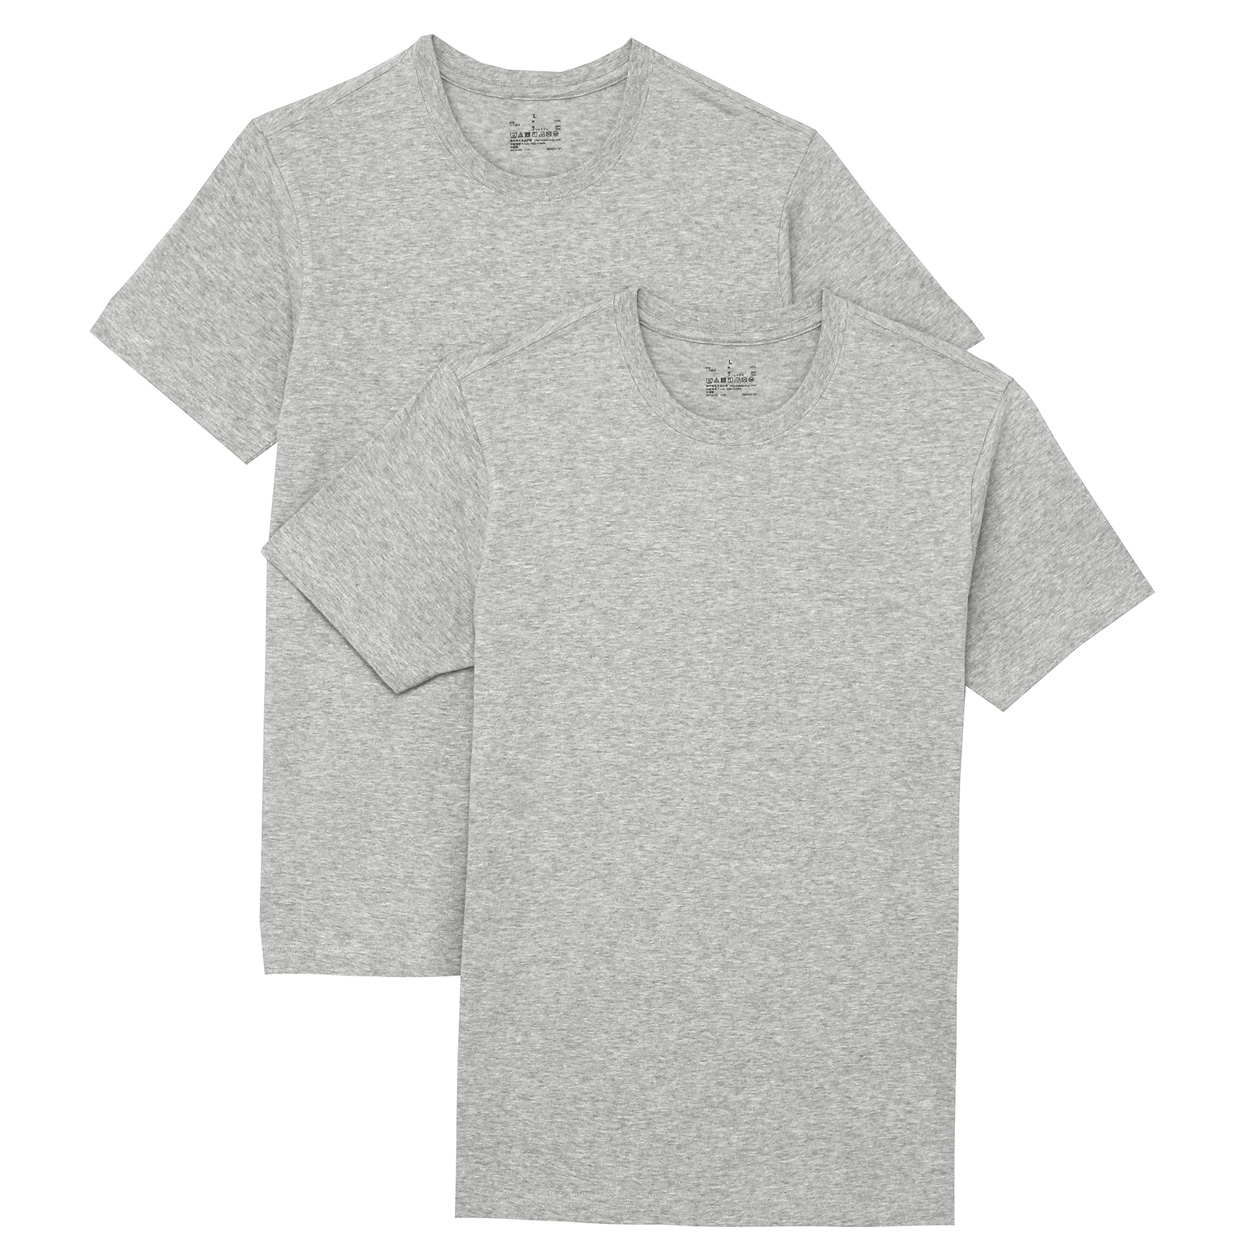 Men 2 pieces Crew neck T-shirt